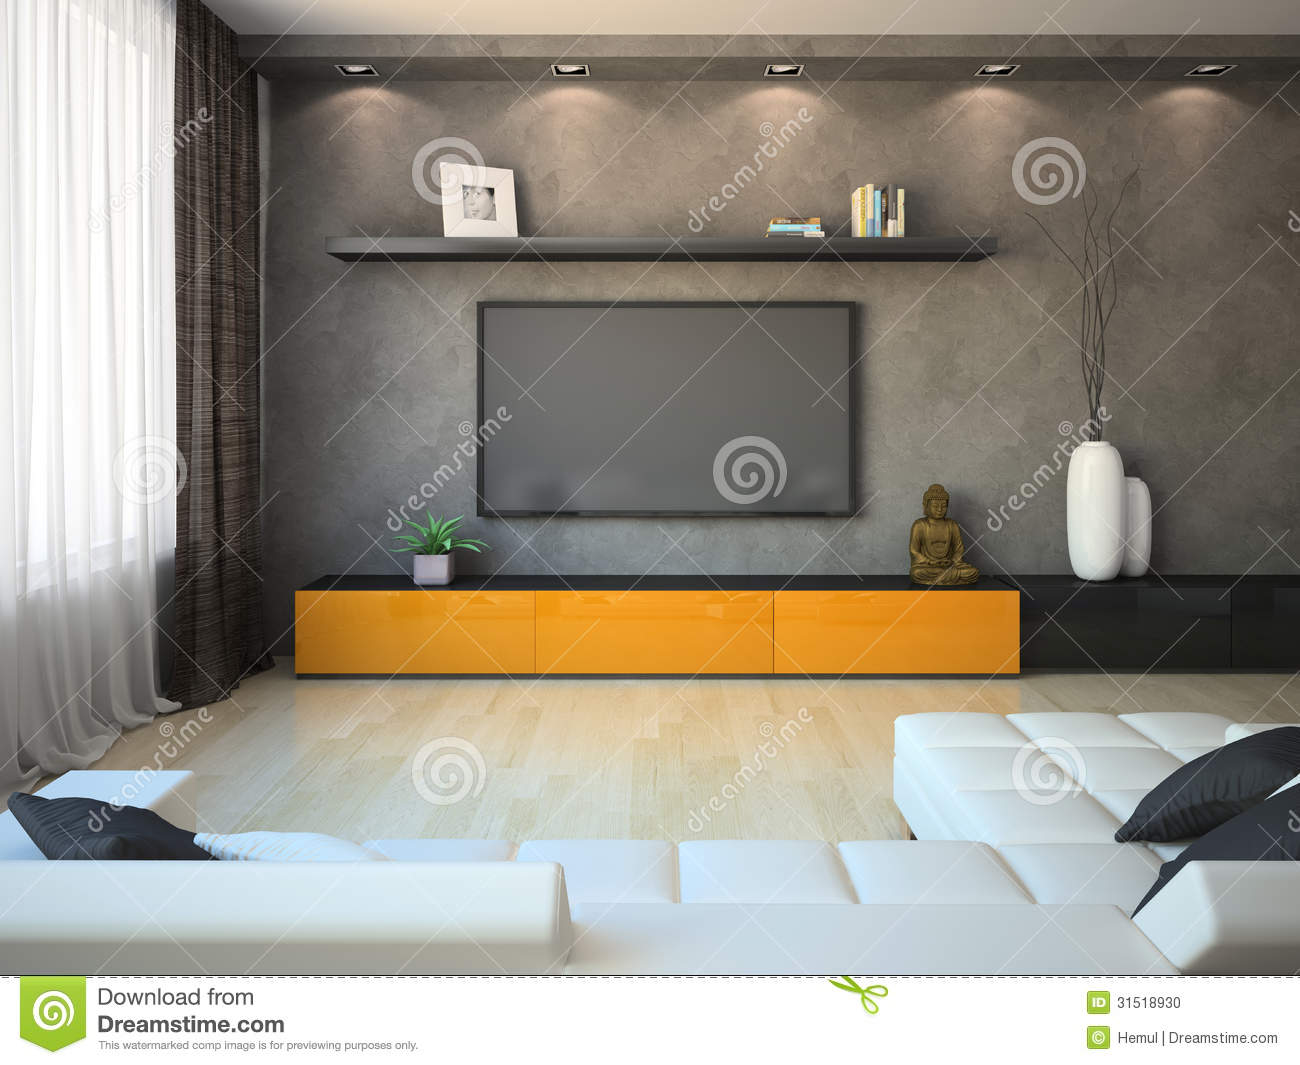 Modern Cabinet interior of a modern cabinet royalty free stock image - image: 9505396